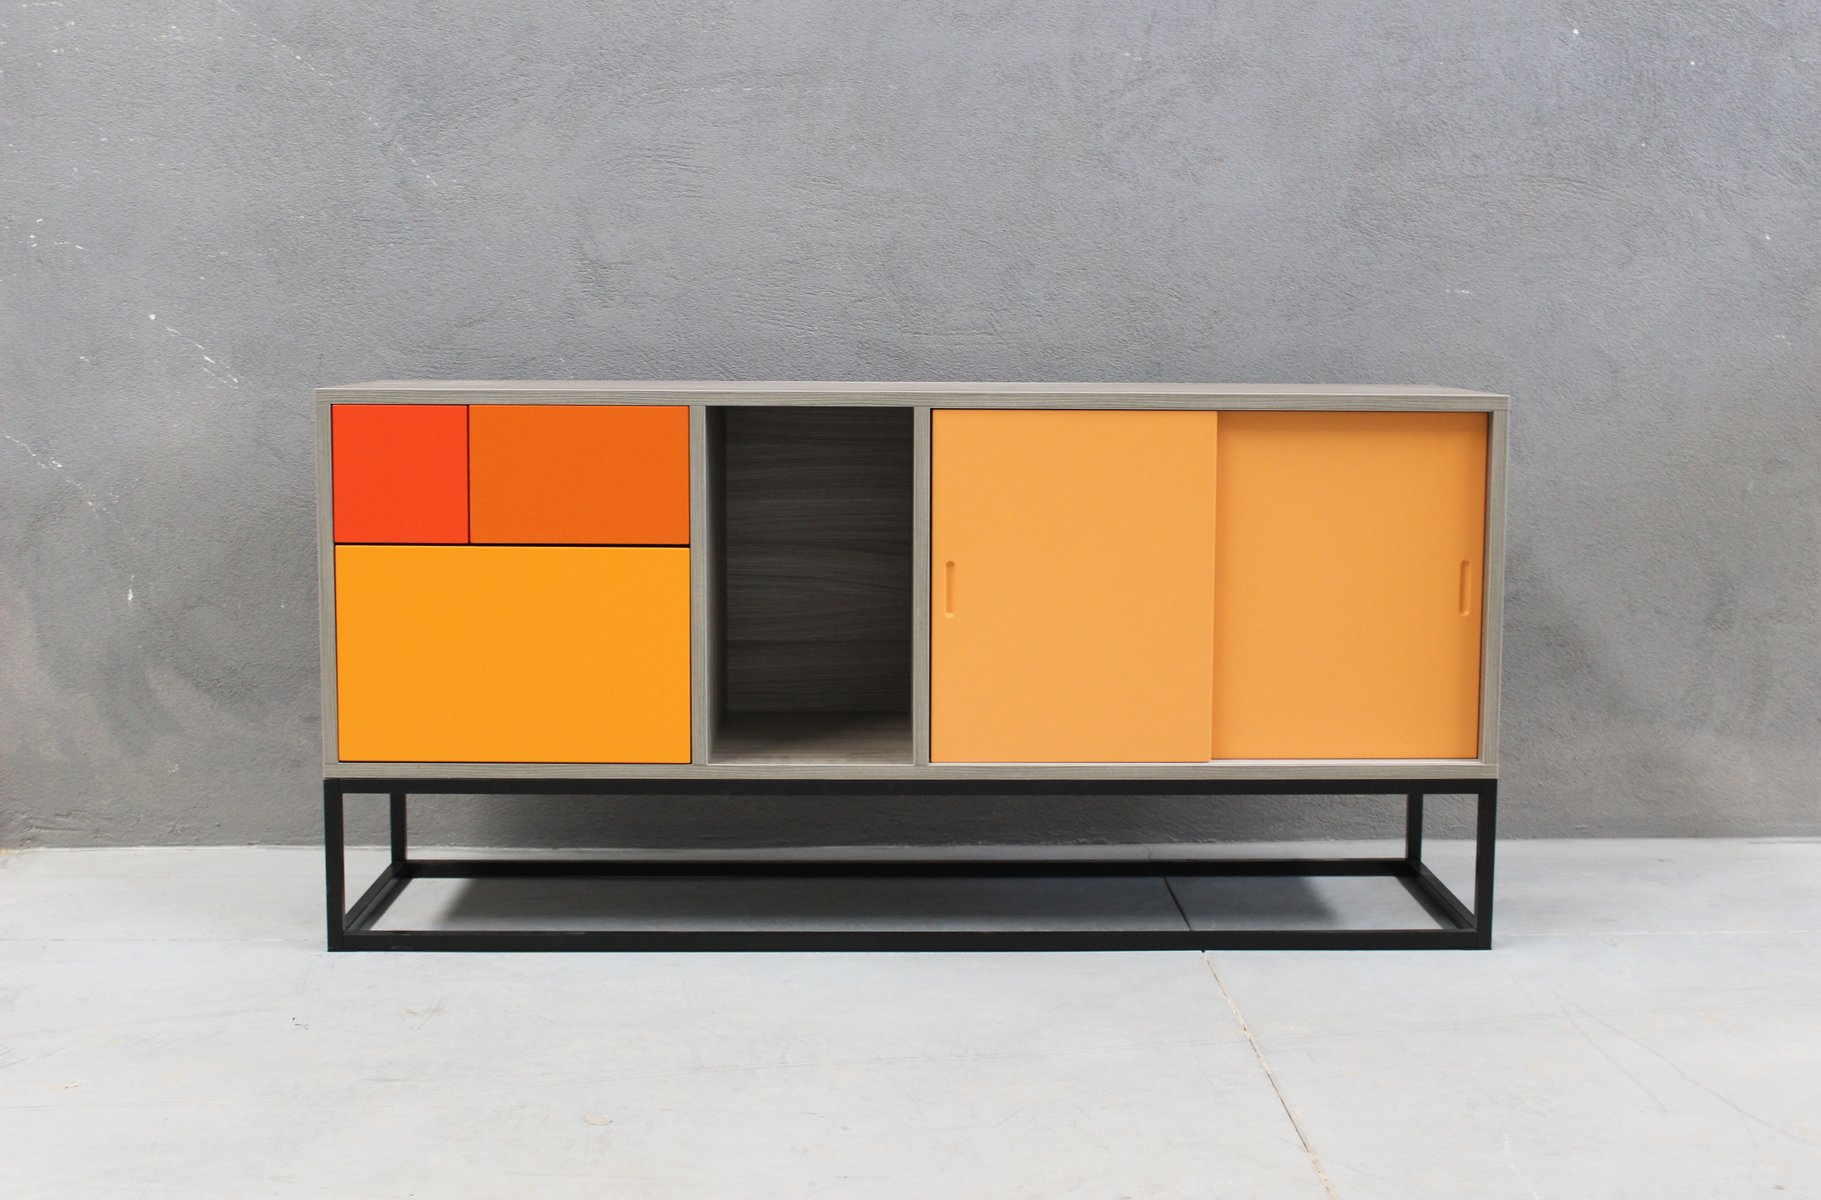 Orange real sideboard by studio deusdara for sale at pamono for Sideboard orange